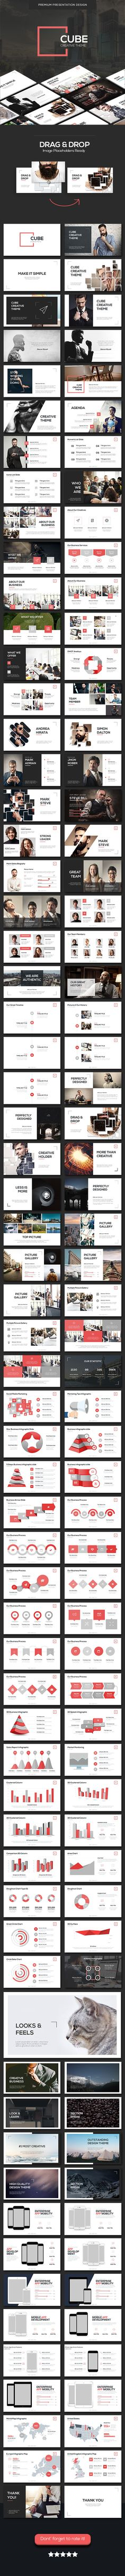 CUBE – Creative Theme (PowerPoint Templates)